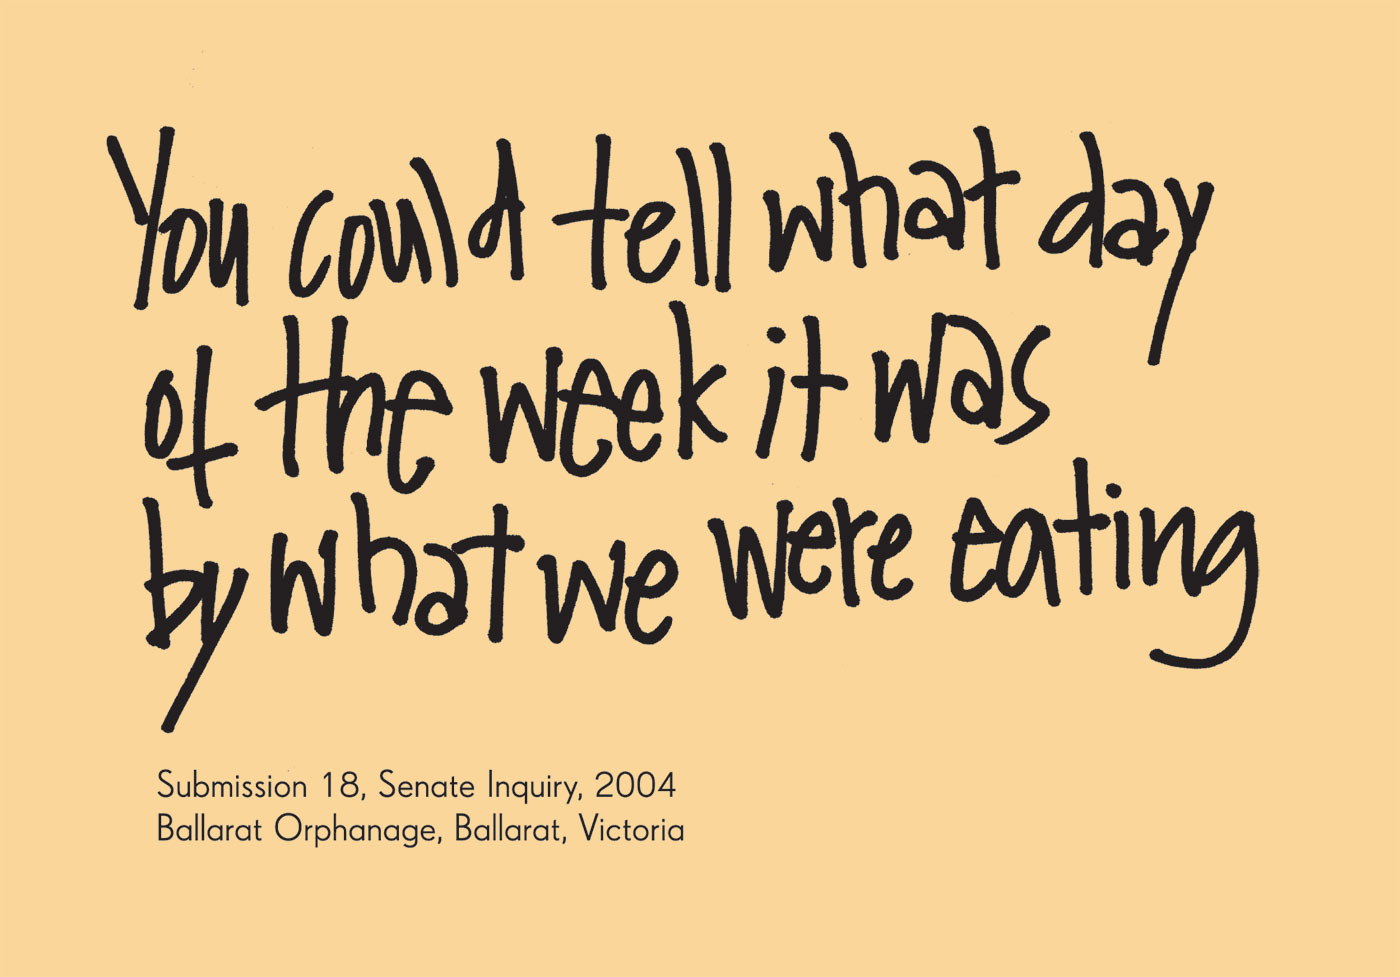 Exhibition graphic panel that reads: 'You could tell what day of the week it was by what we were eating', attributed to 'Submission 18, Senate Inquiry, 2004, Ballarat Orphanage, Ballarat, Victoria, date unknown'. - click to view larger image